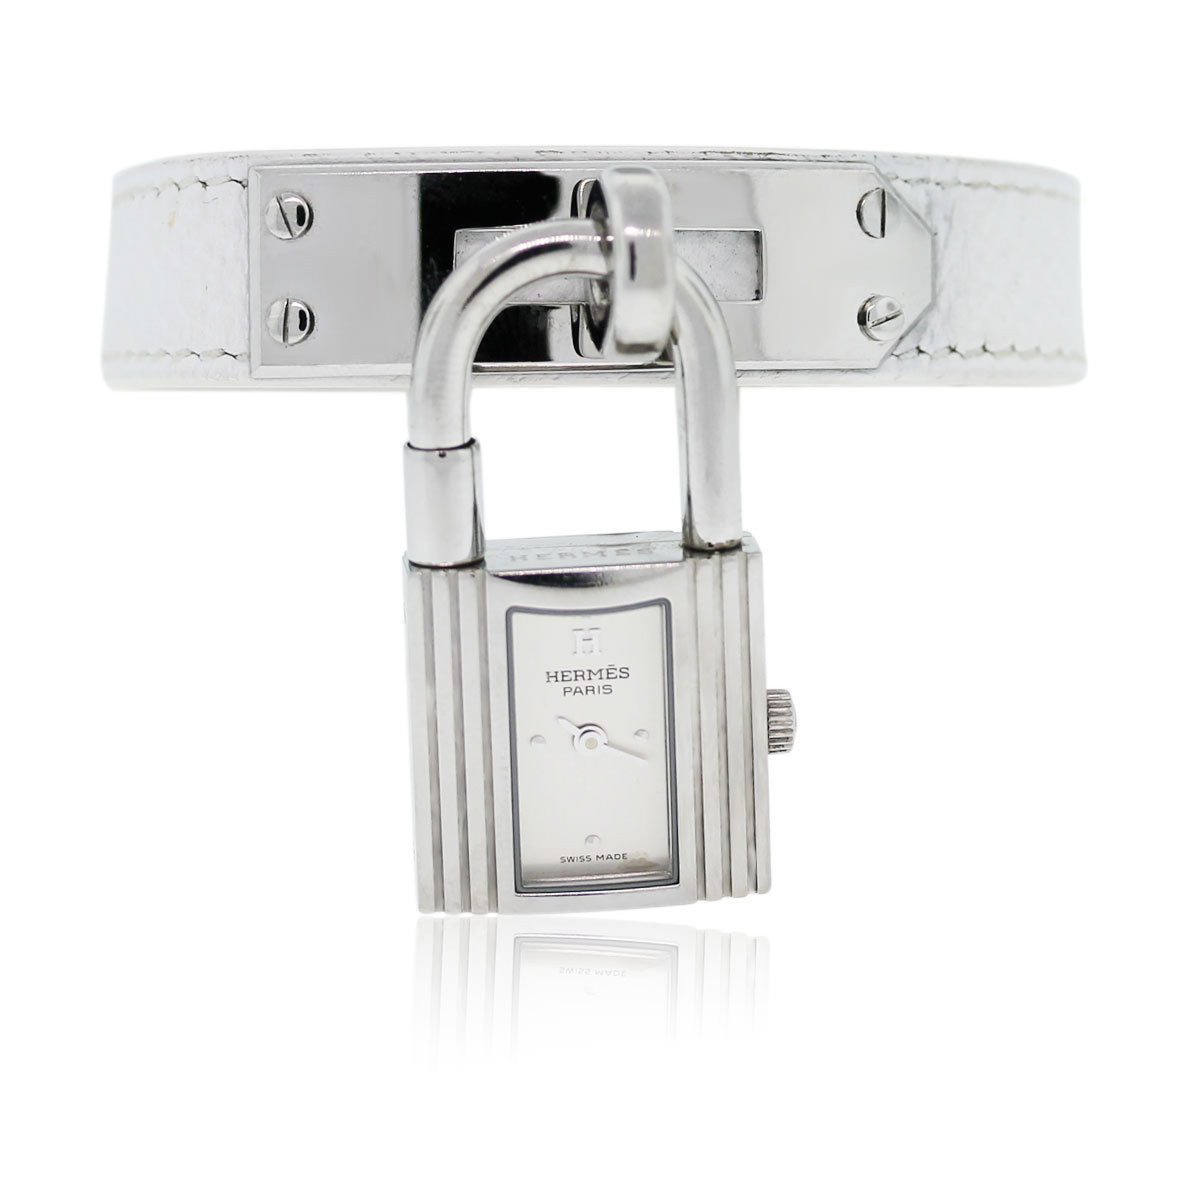 You are viewing this Hermes Kelly Lock Watch